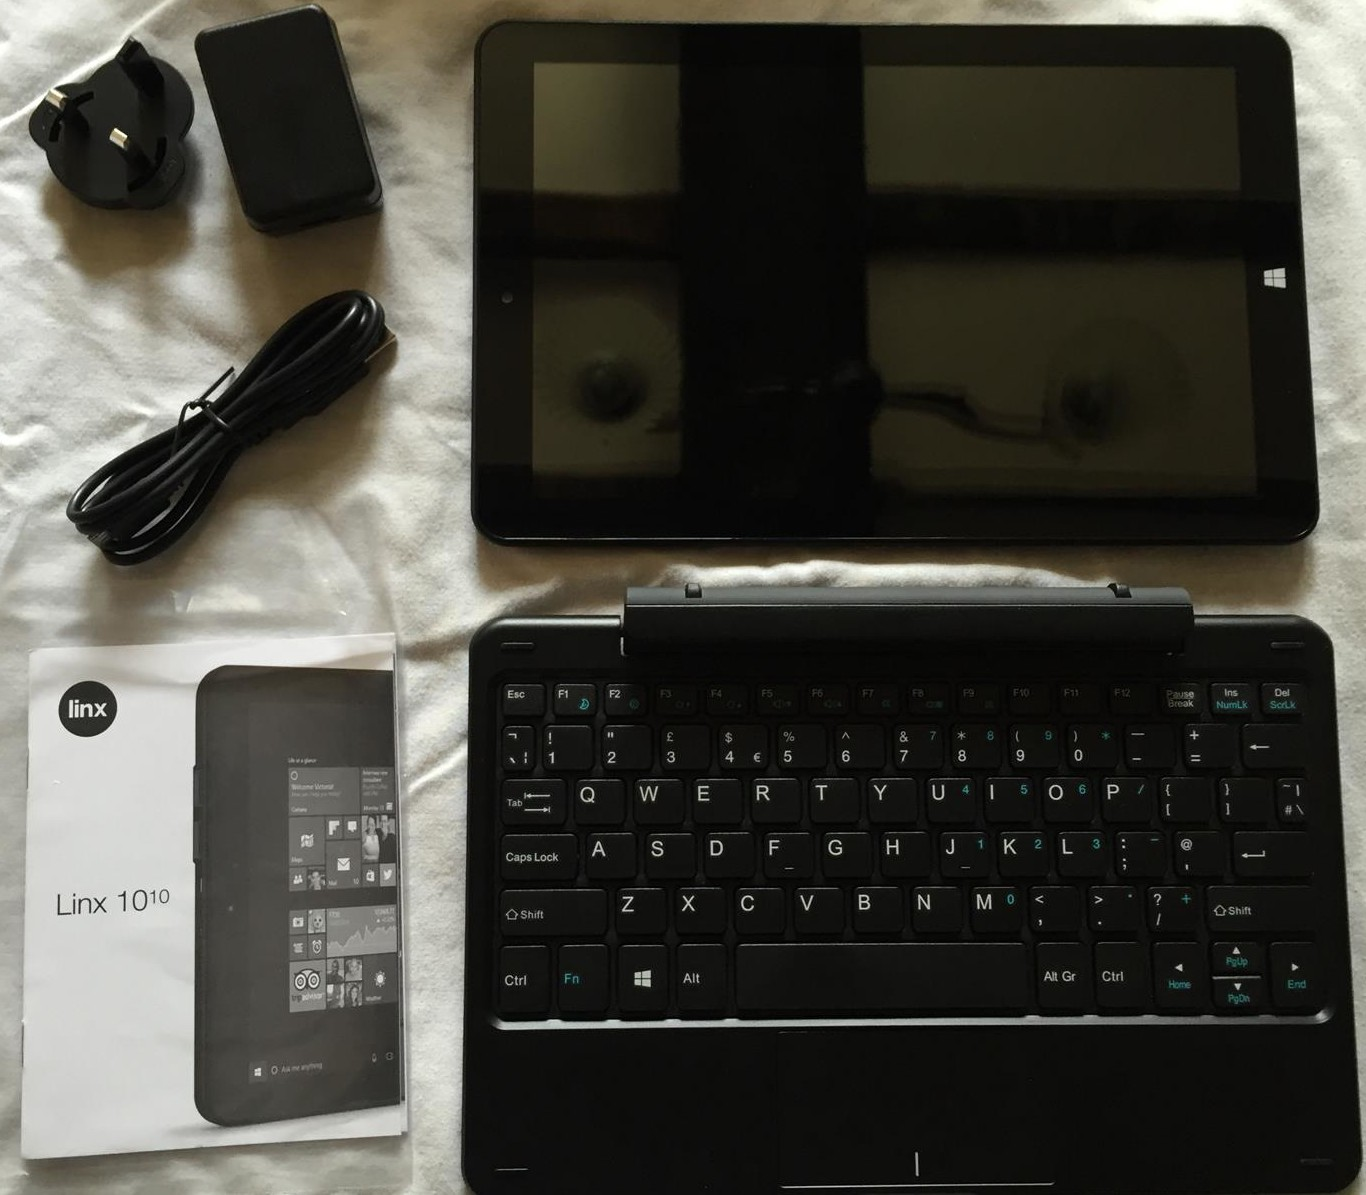 Linx 1010 Review – best Windows 10 tablet on the market